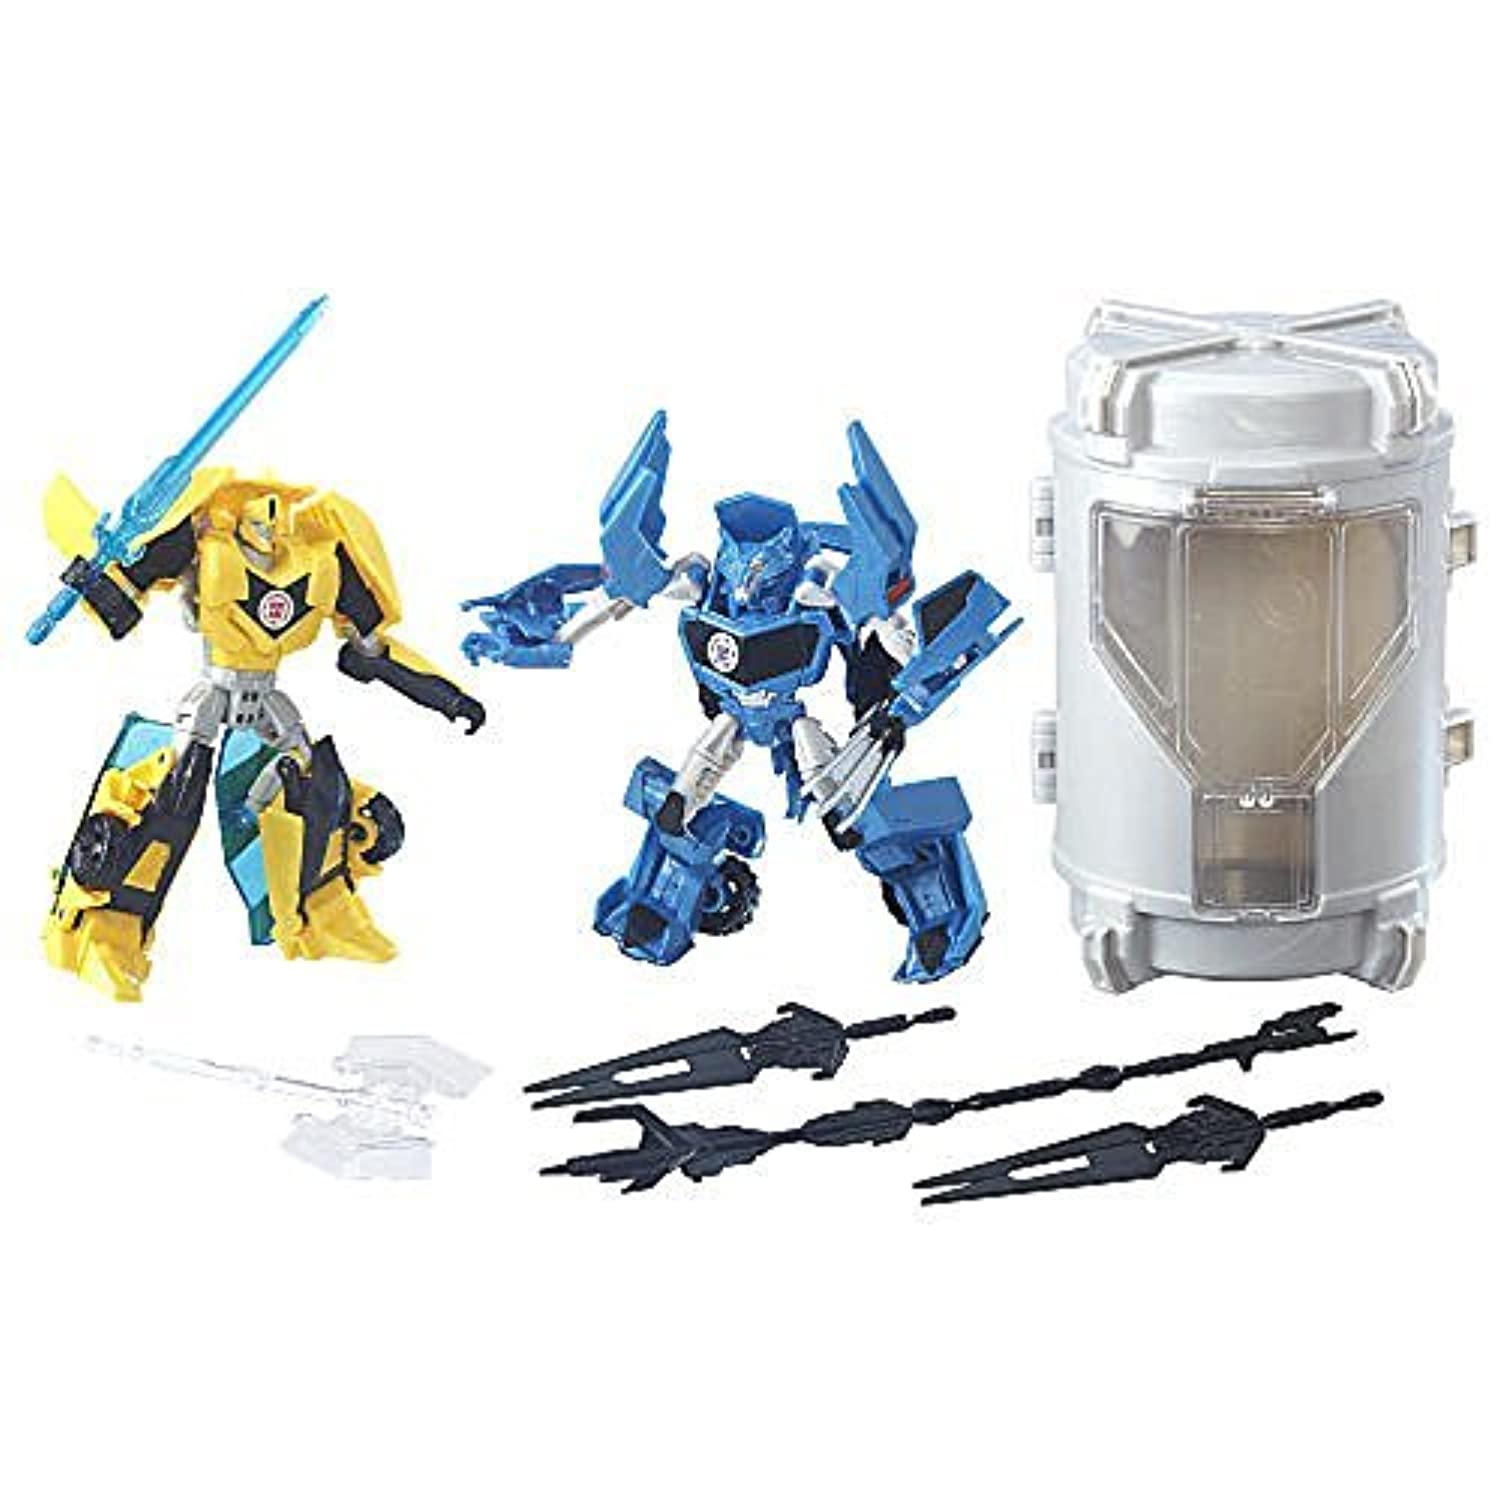 Transformers Robots in Disguise Clash of the Transformers Decepticon Island Showdown Exclusive Warrior Action Figure 2-Pack [並行輸入品]